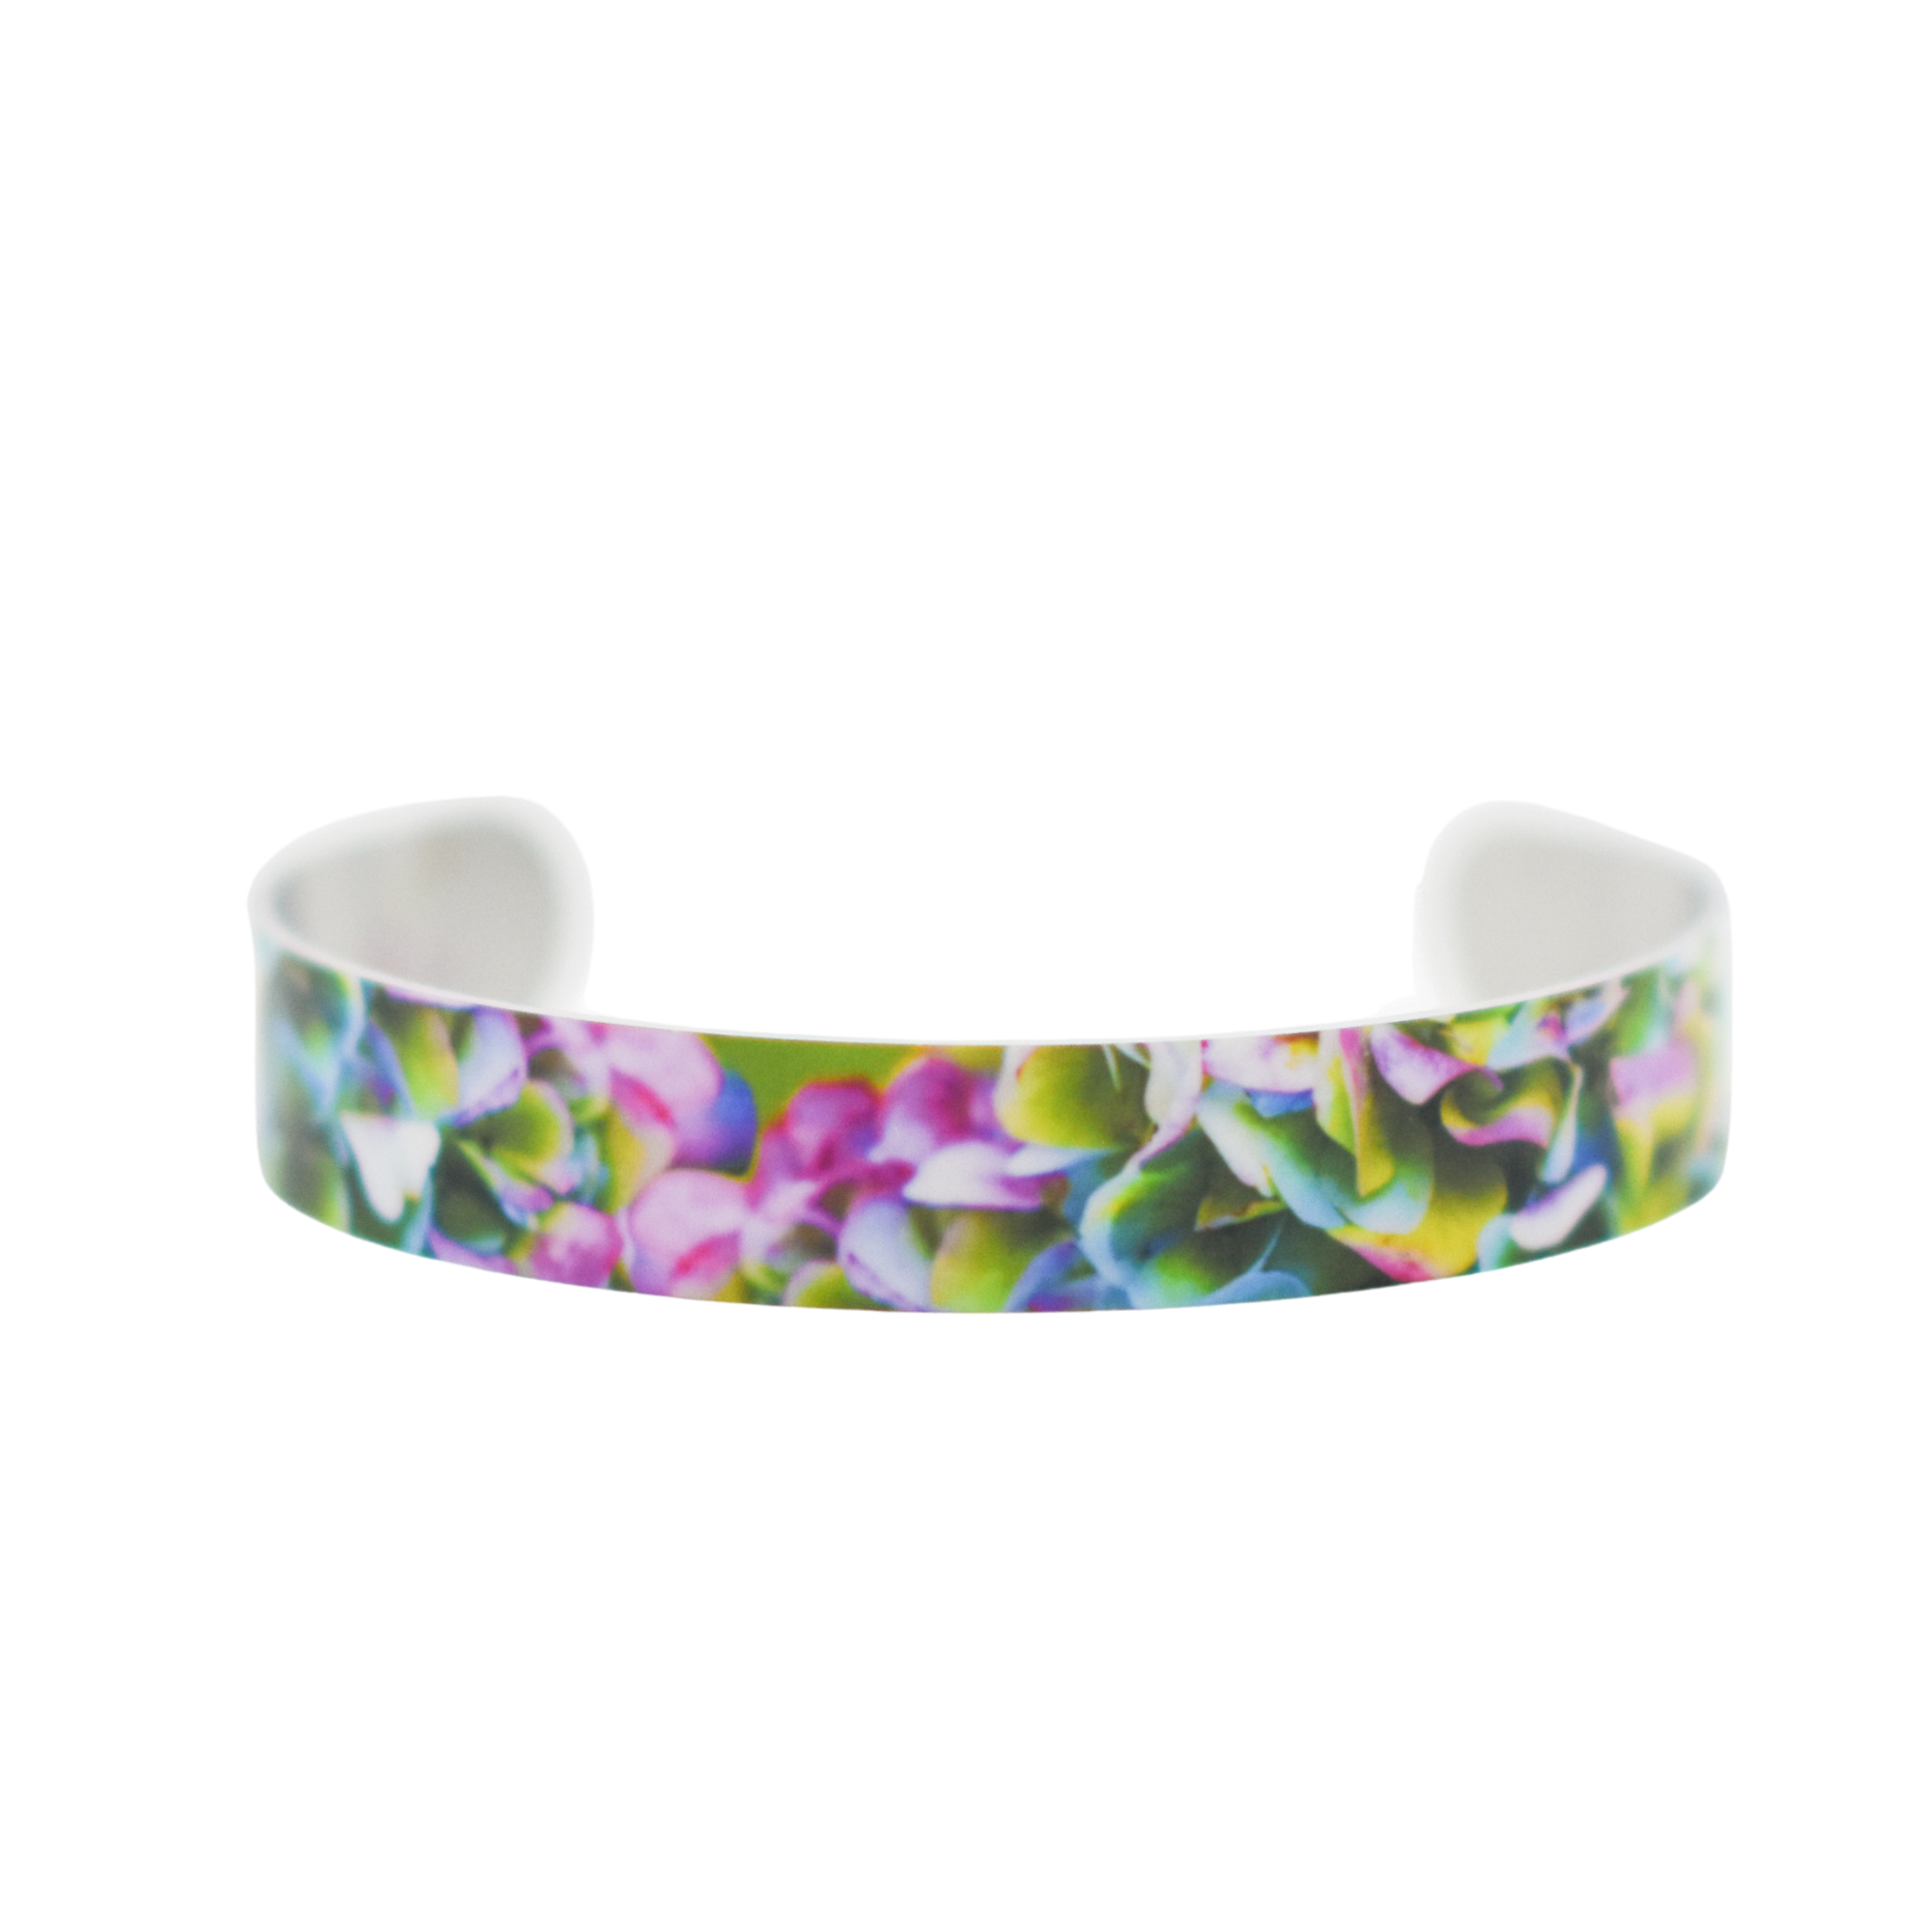 Standard view of Heavenly Hydrangea Super Narrow Cuff Bracelet | Wear the Wonder